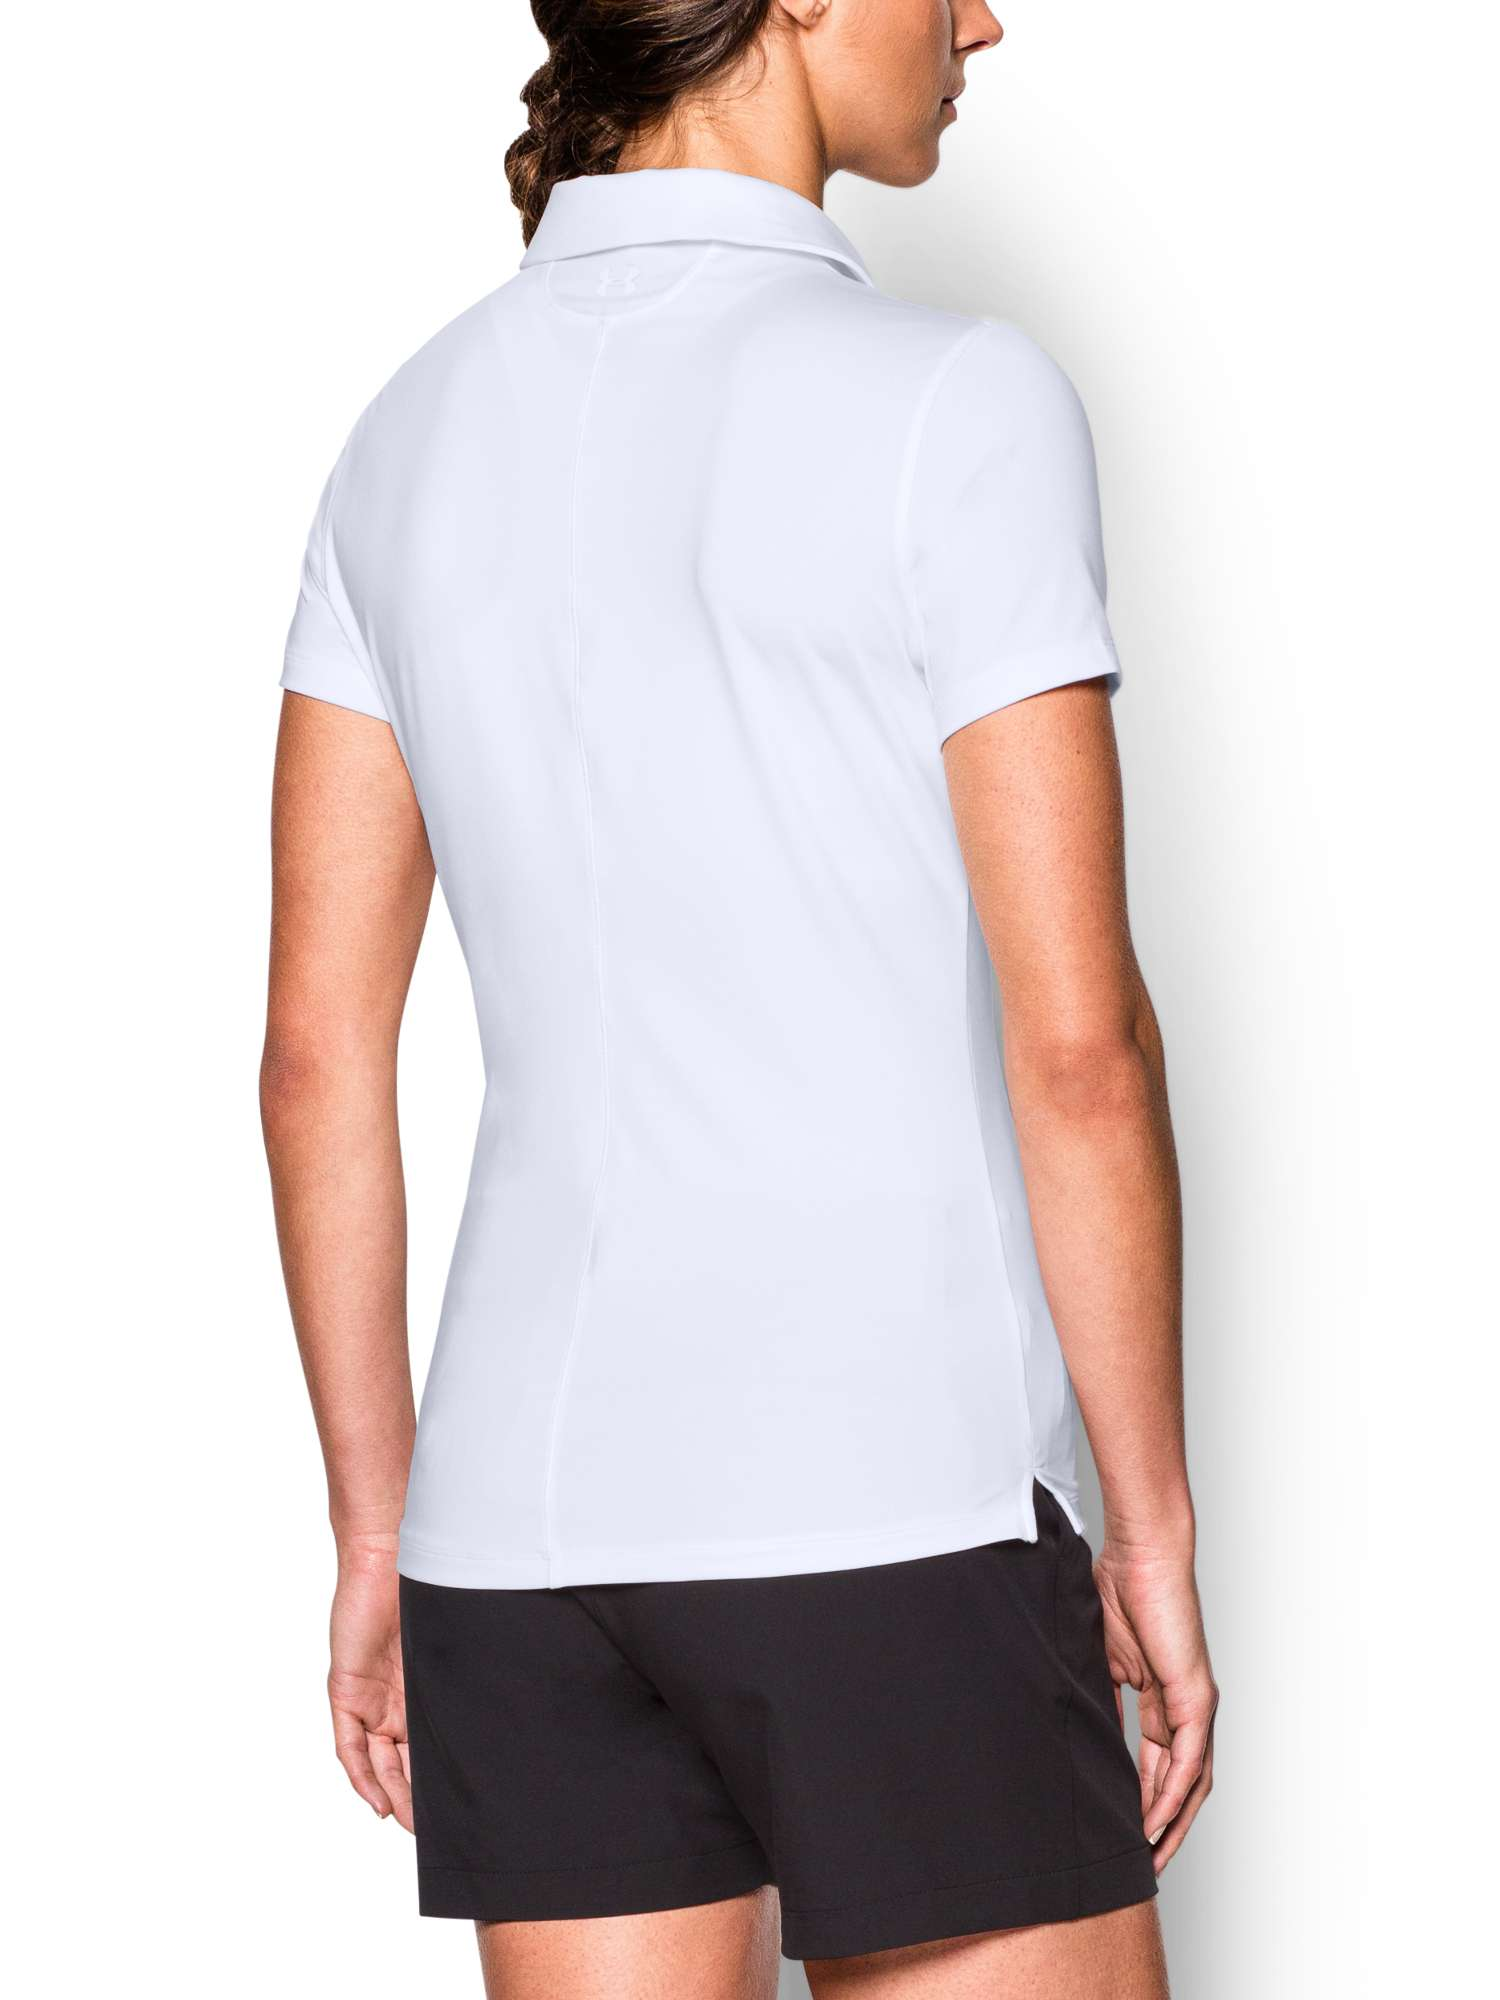 Armour Polo Zinger Zinger Polo Under Under Armour Under Armour 1t5nFnwq